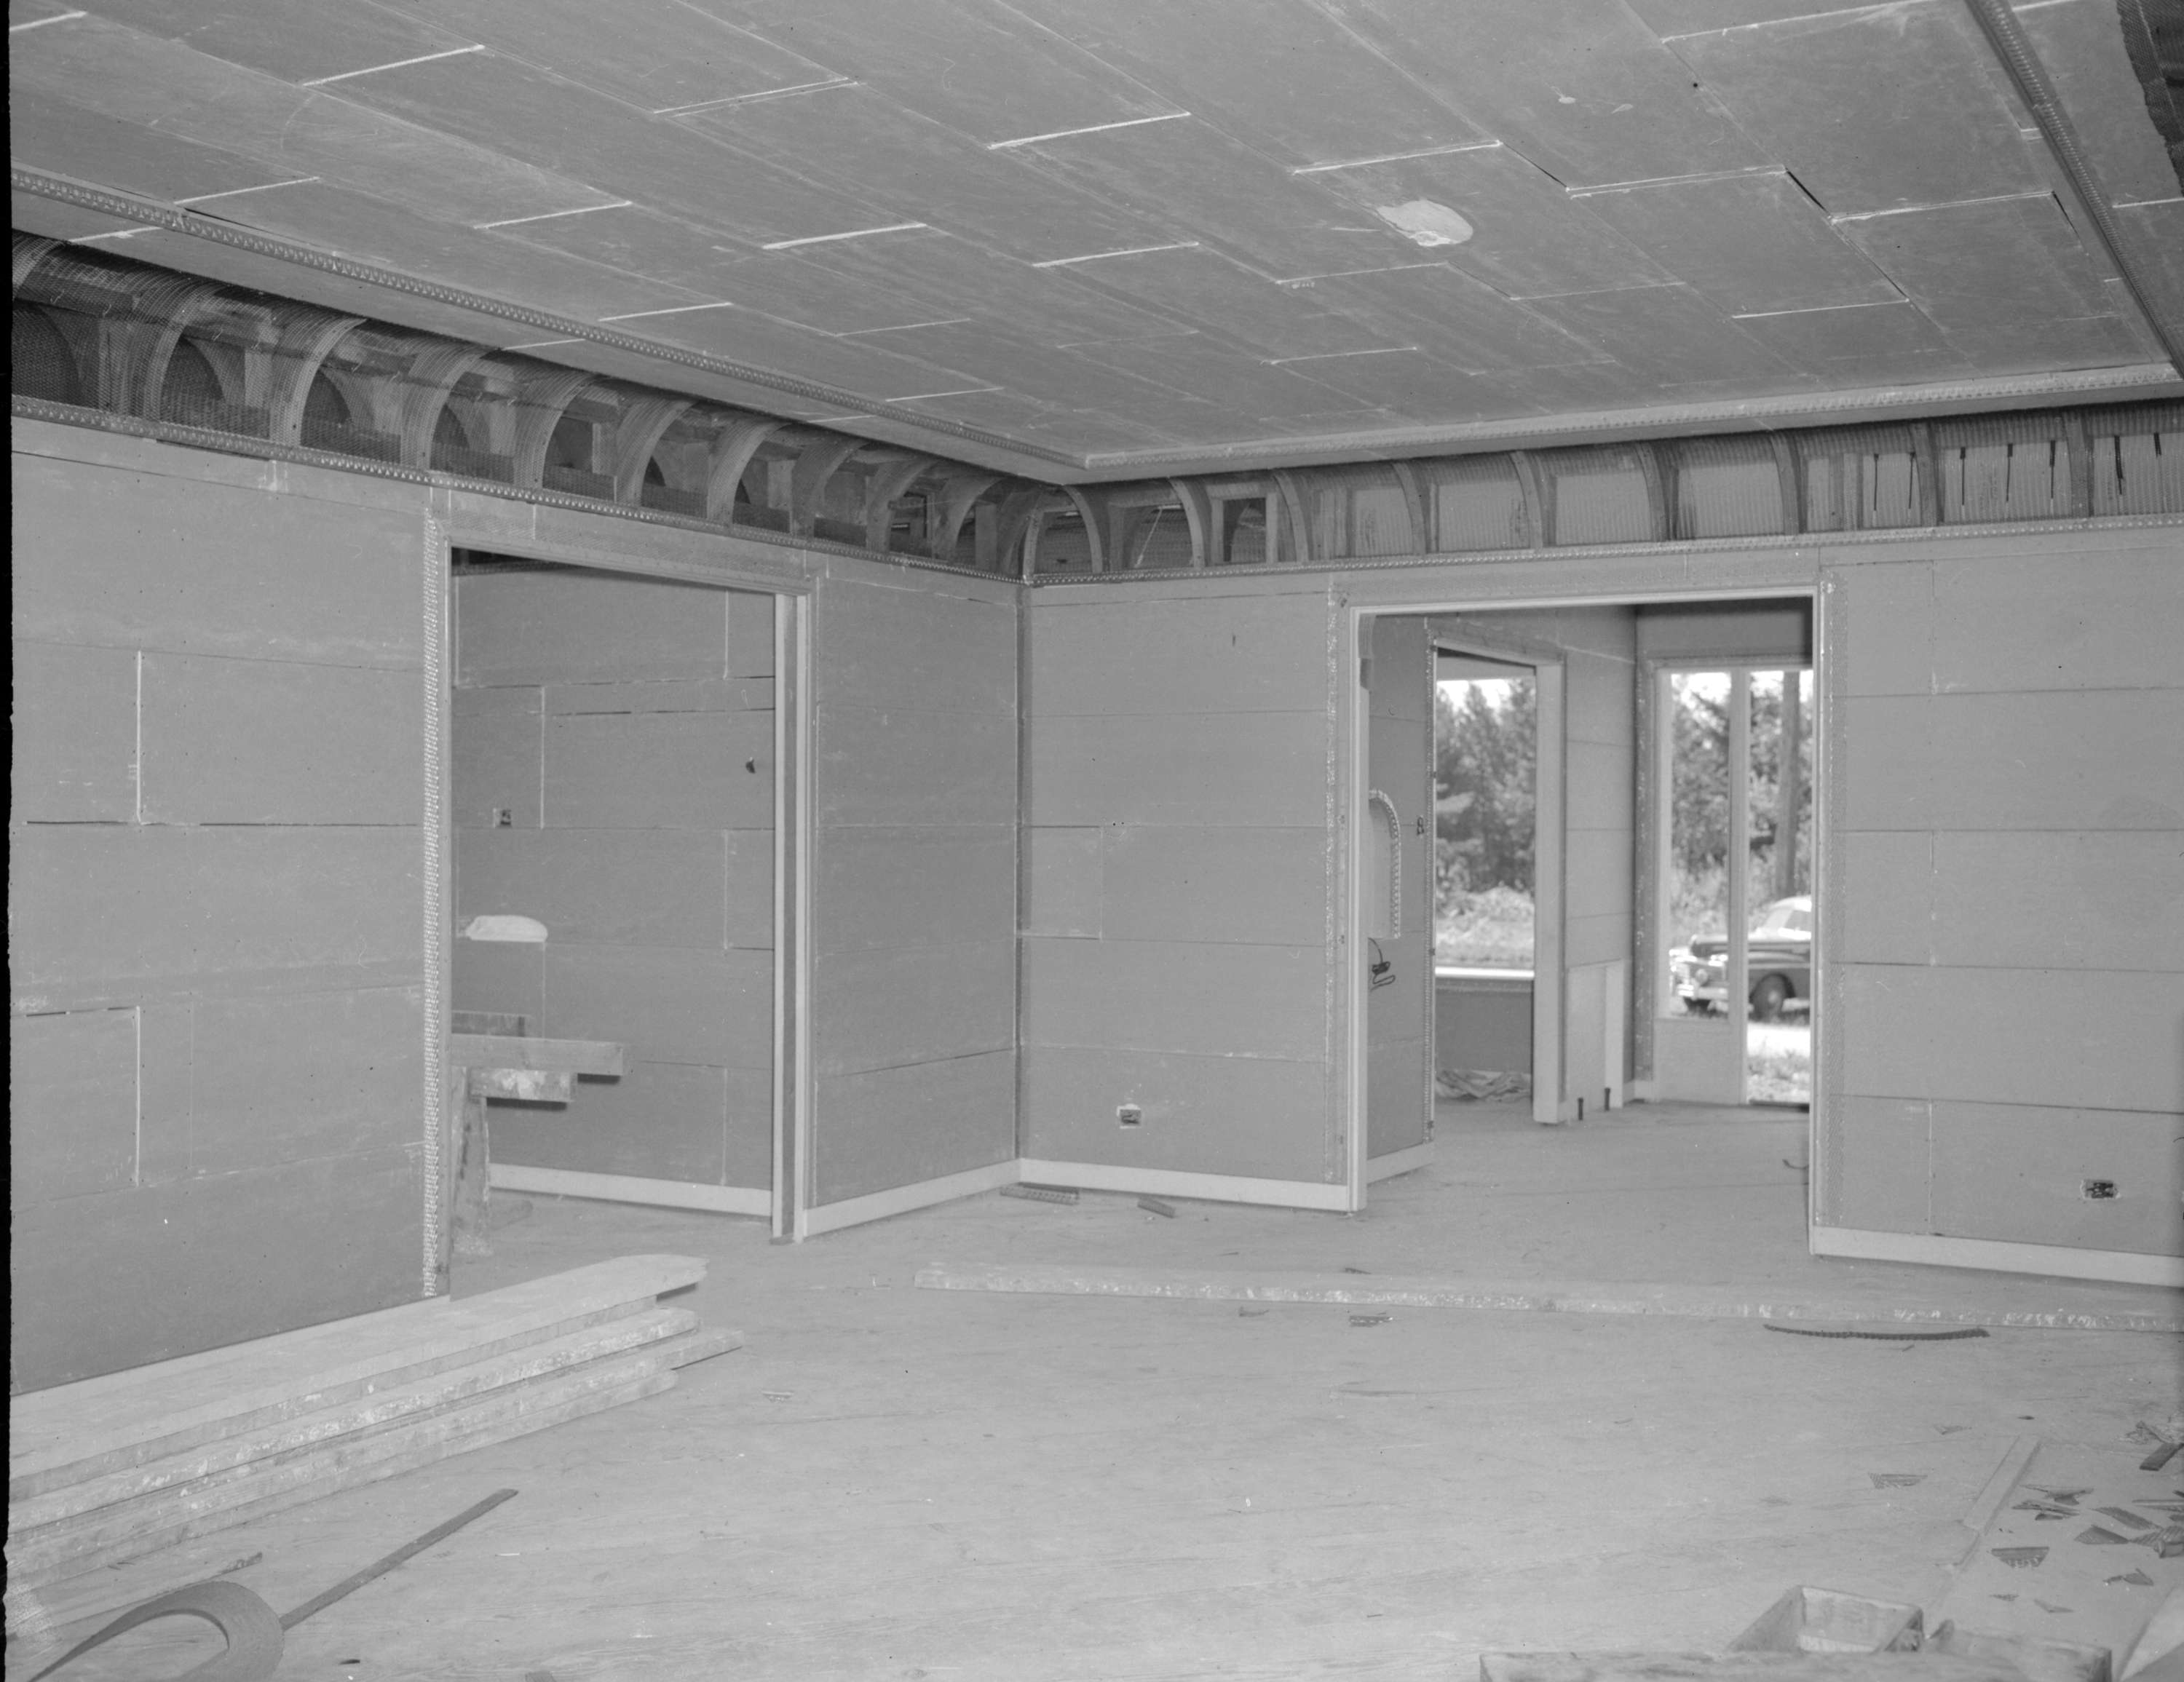 Interior view of a room in a building under construction or ...